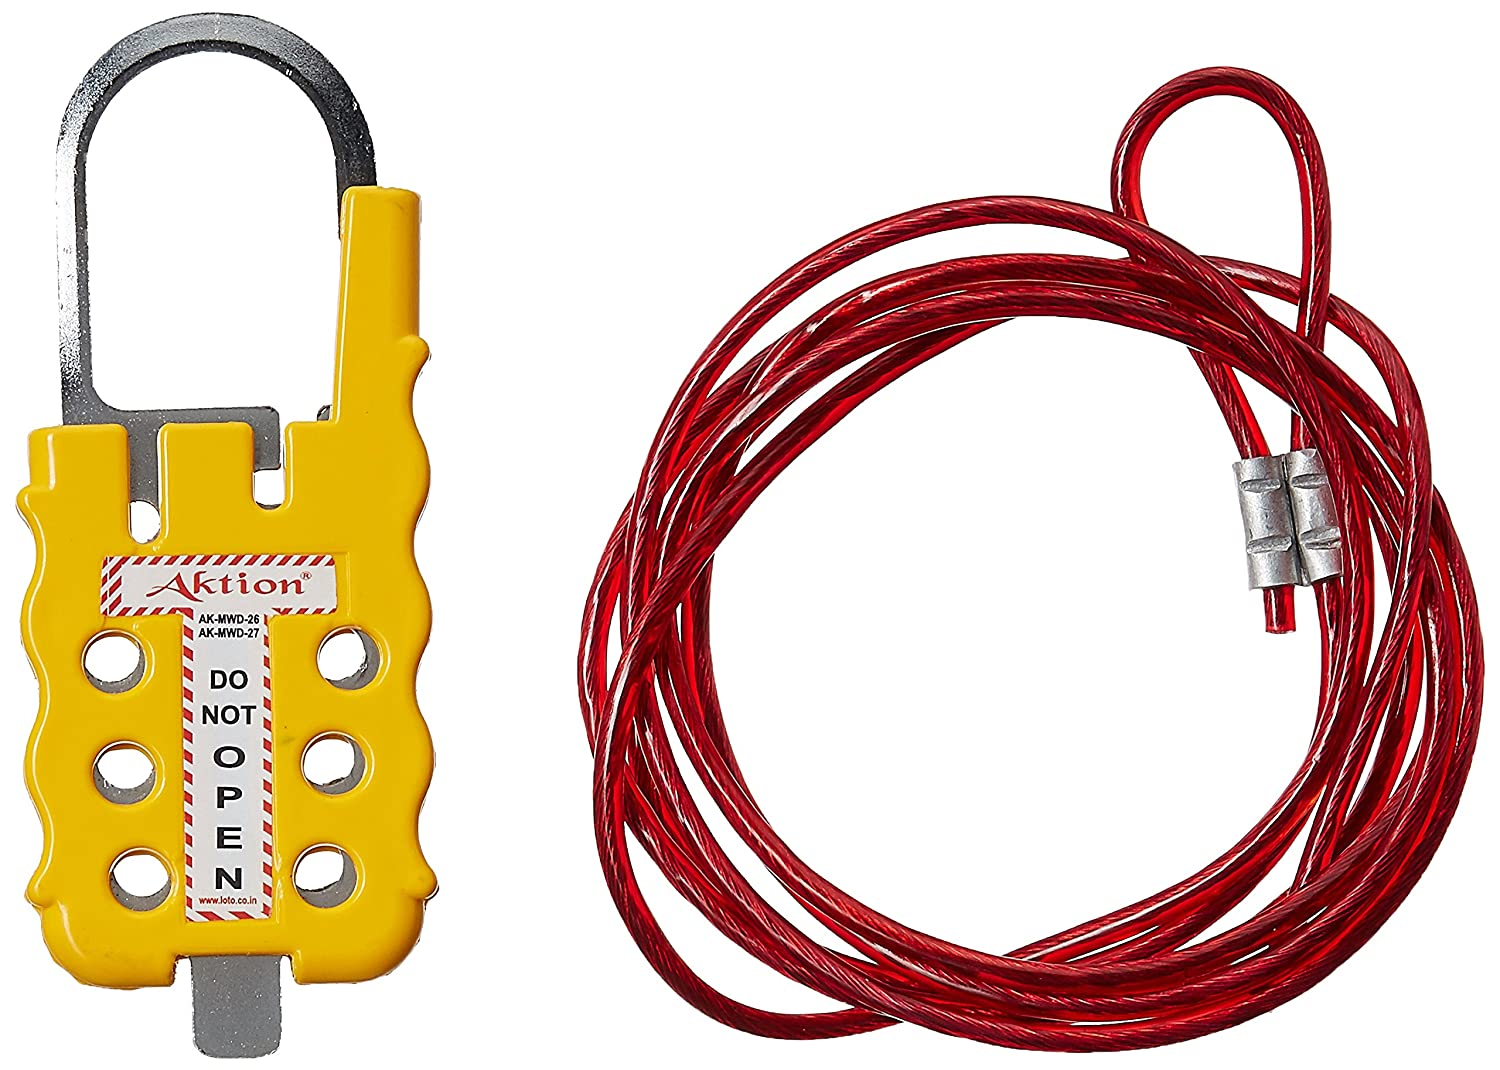 Aktion Safety Multipurpose Cable Lockout Device AK-MWD-27 Number of Holes: 6 - Yellow (Pack of 1)